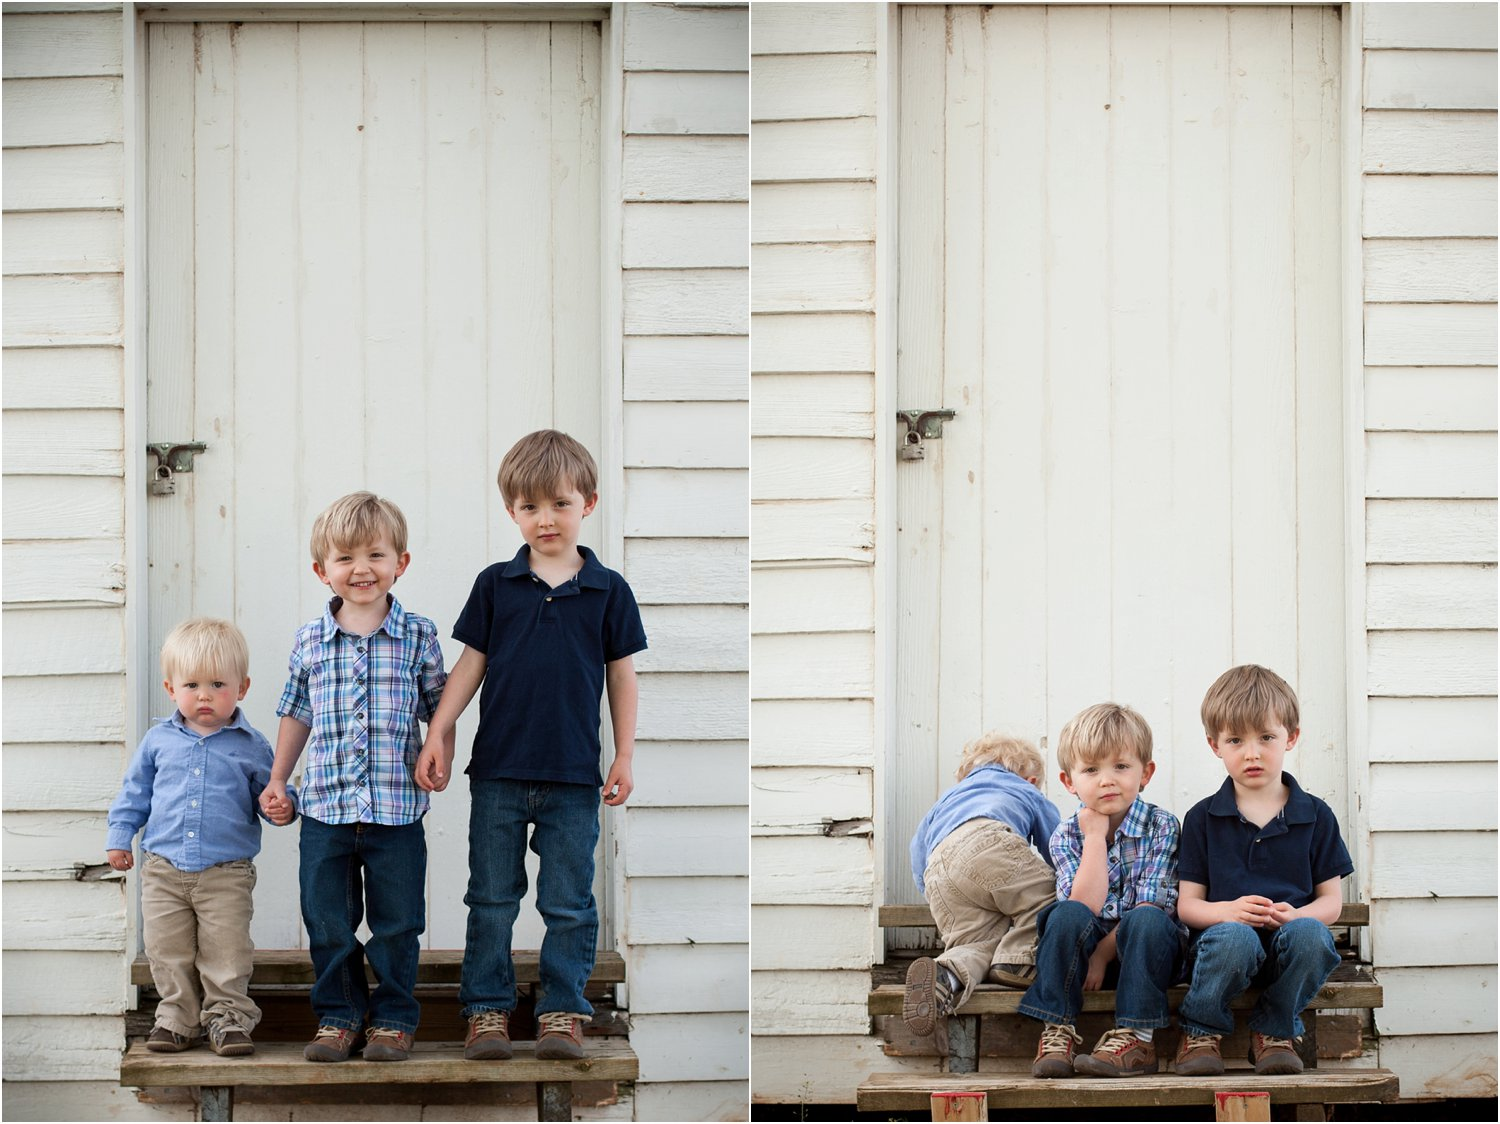 Harrisonburg_Family_Portraits_Nelsons_0004.jpg